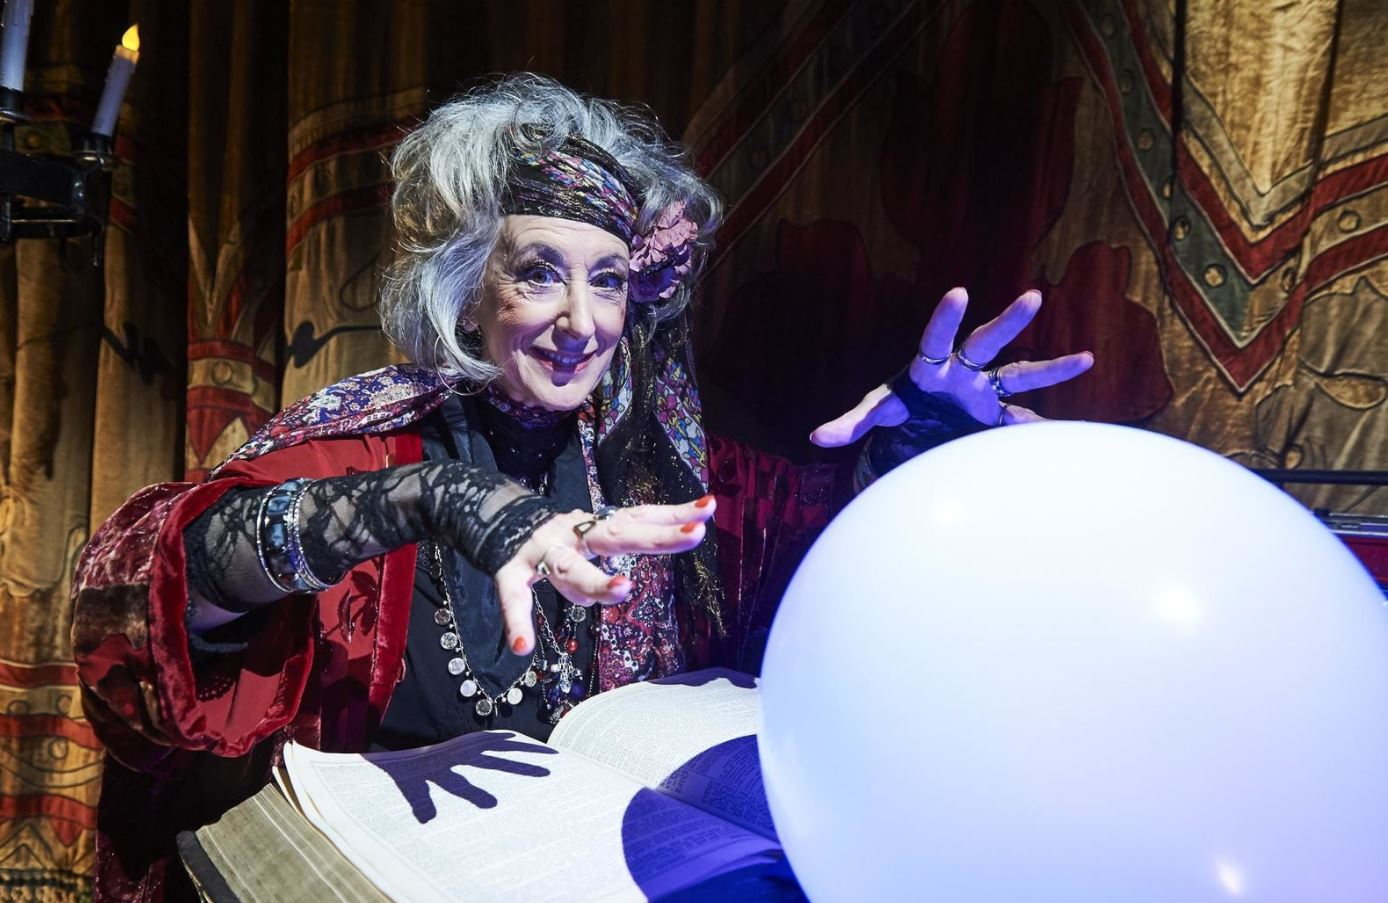 The Crystal Maze gives us our first look at Maureen Lipman as Mumsey